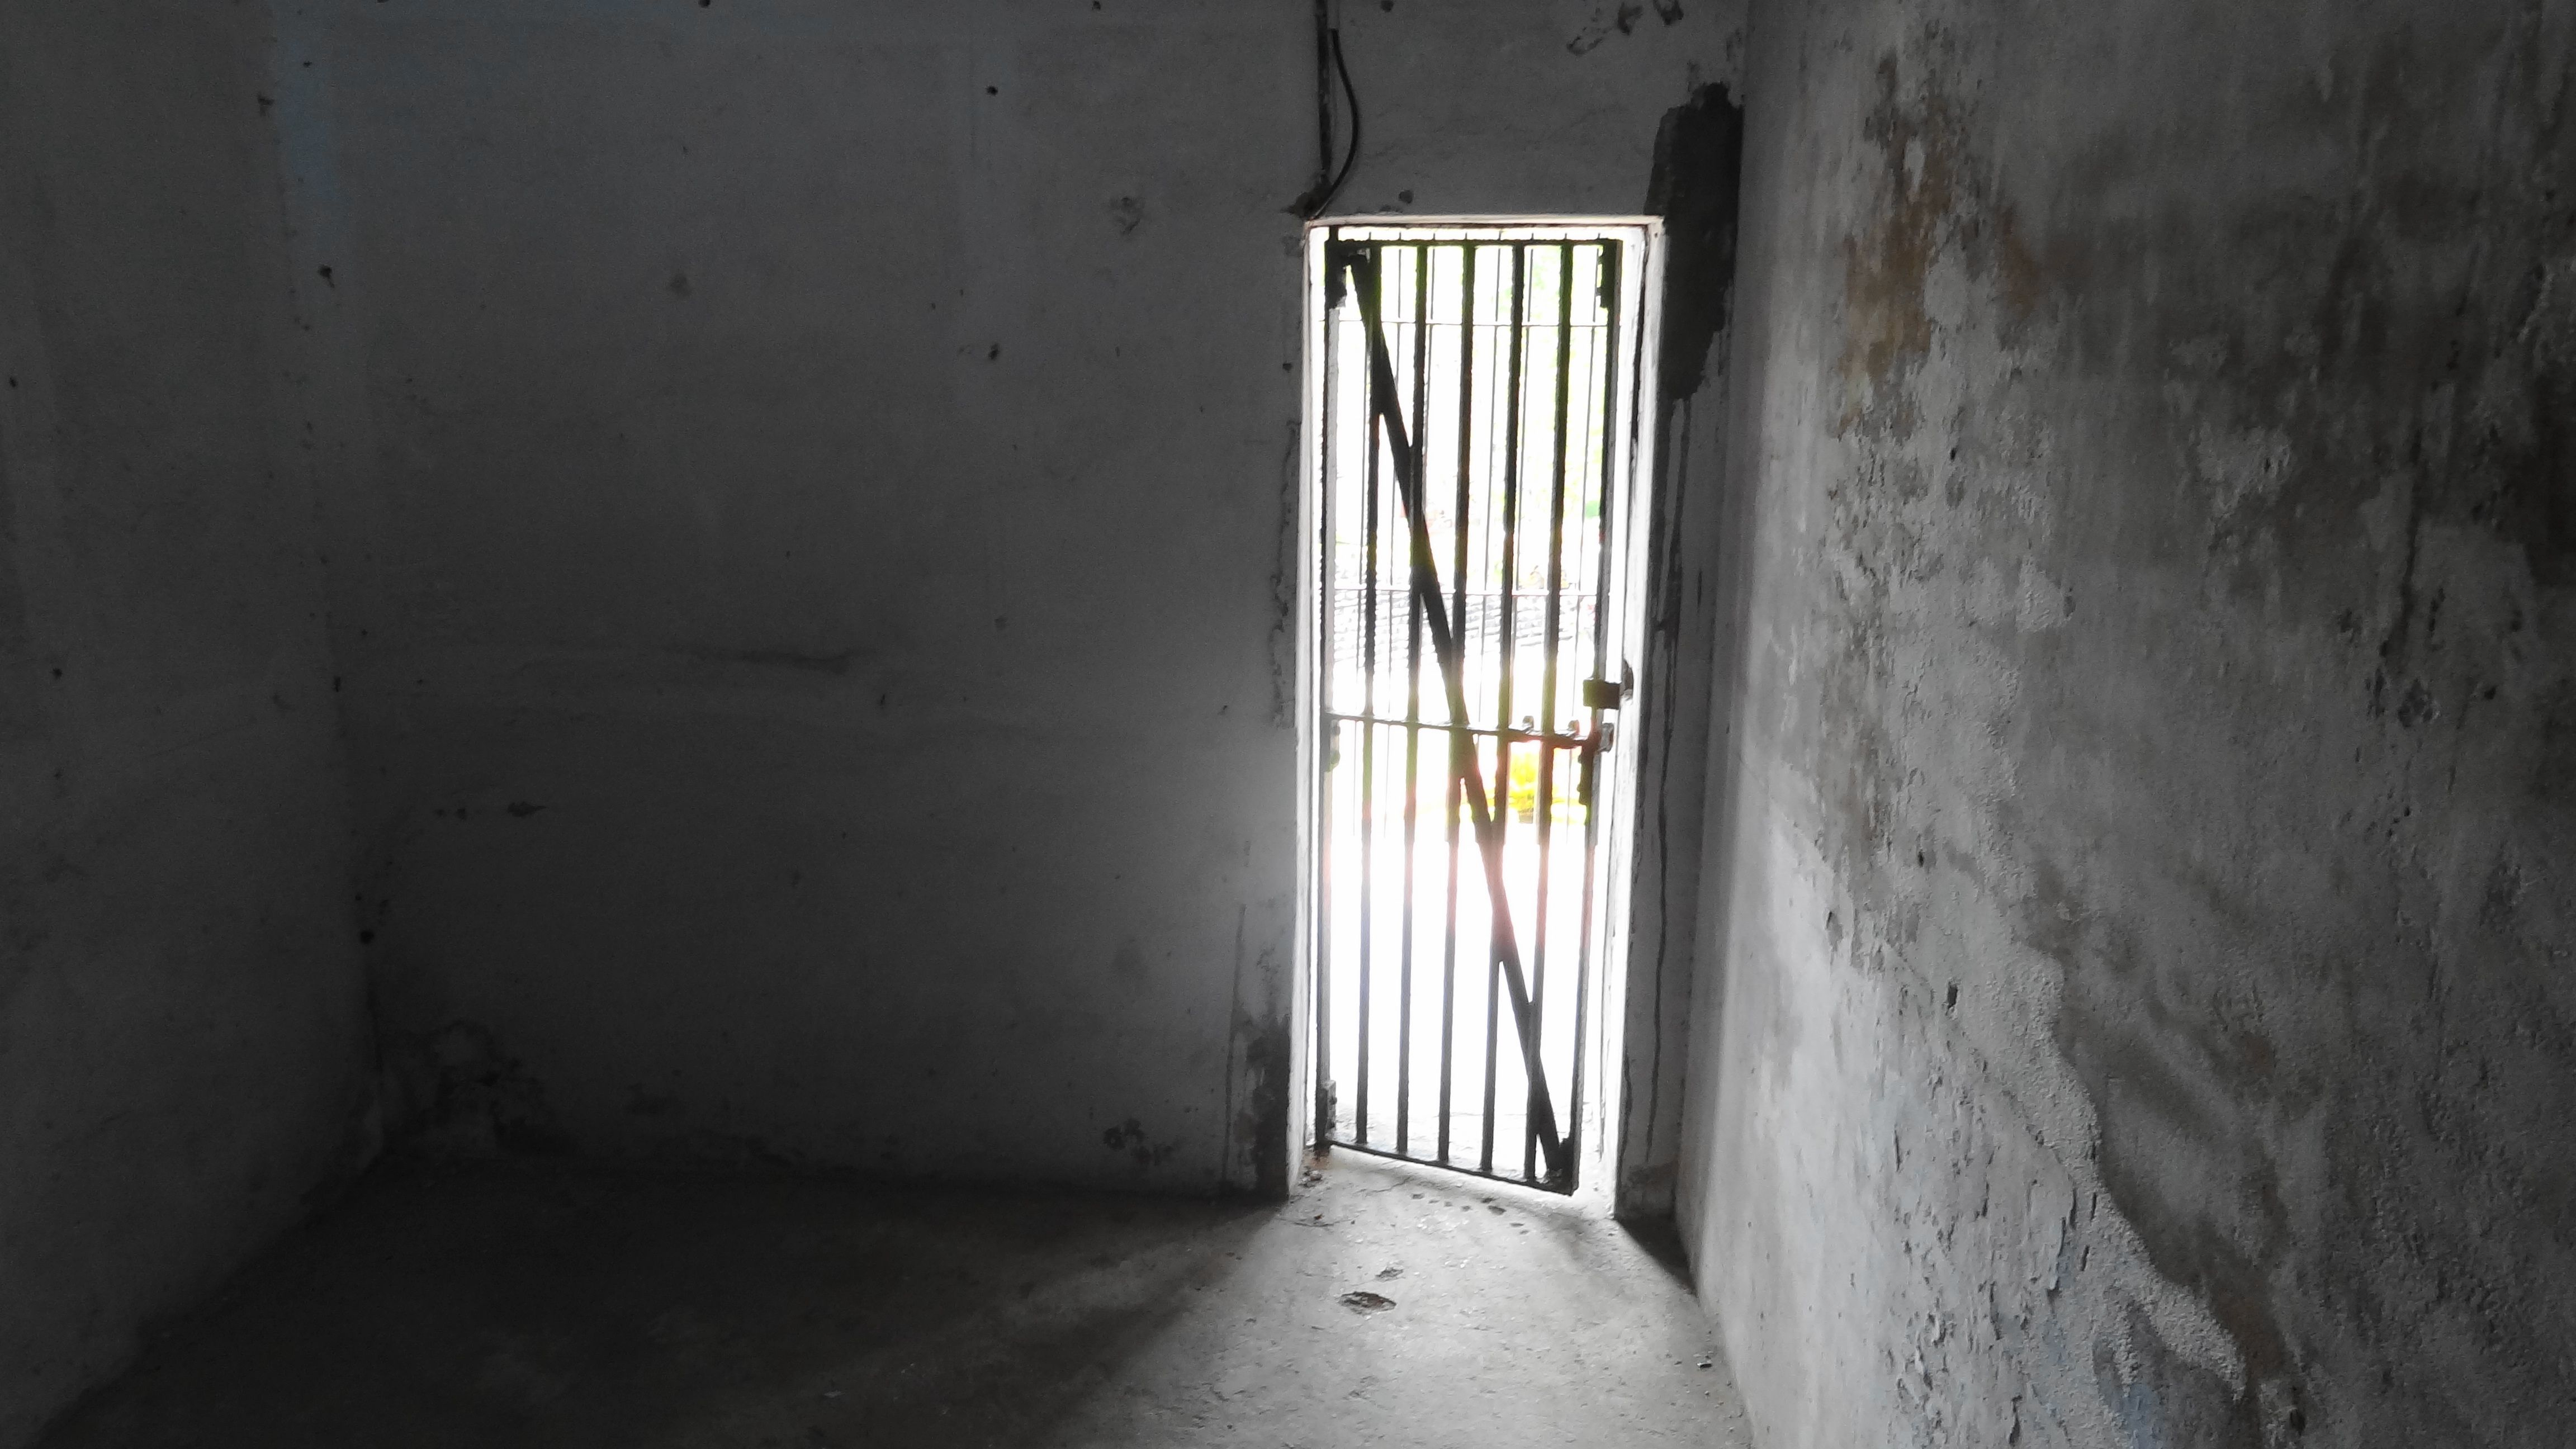 Obviously Keeping People In Out But Very Easy To See What S Beyond It False Sense Of Freedom Cellular Jail Jail Cell Prison